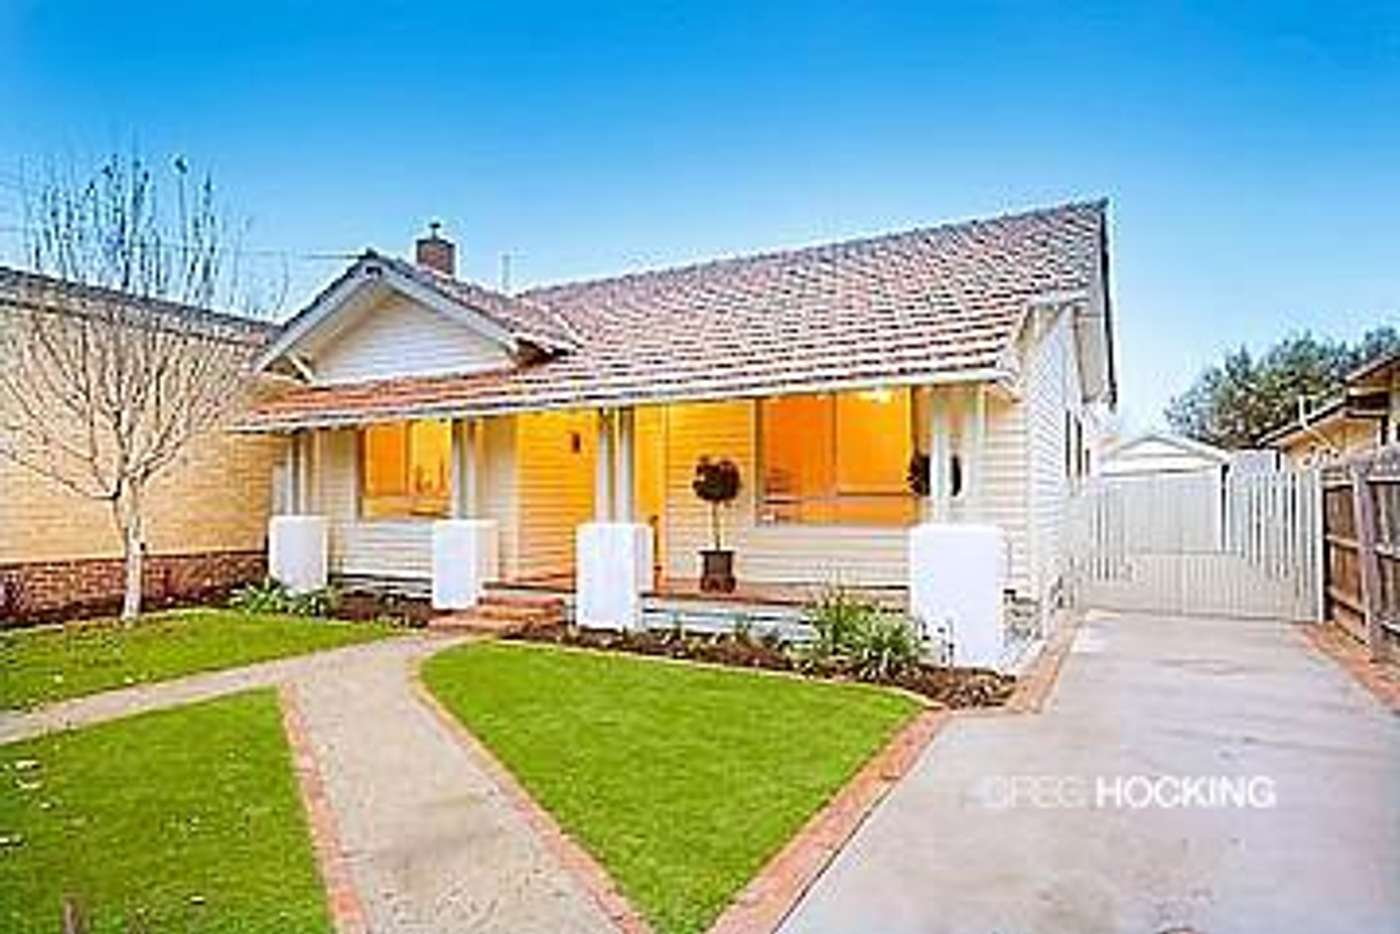 Main view of Homely house listing, 5 Elphinstone Street, West Footscray VIC 3012